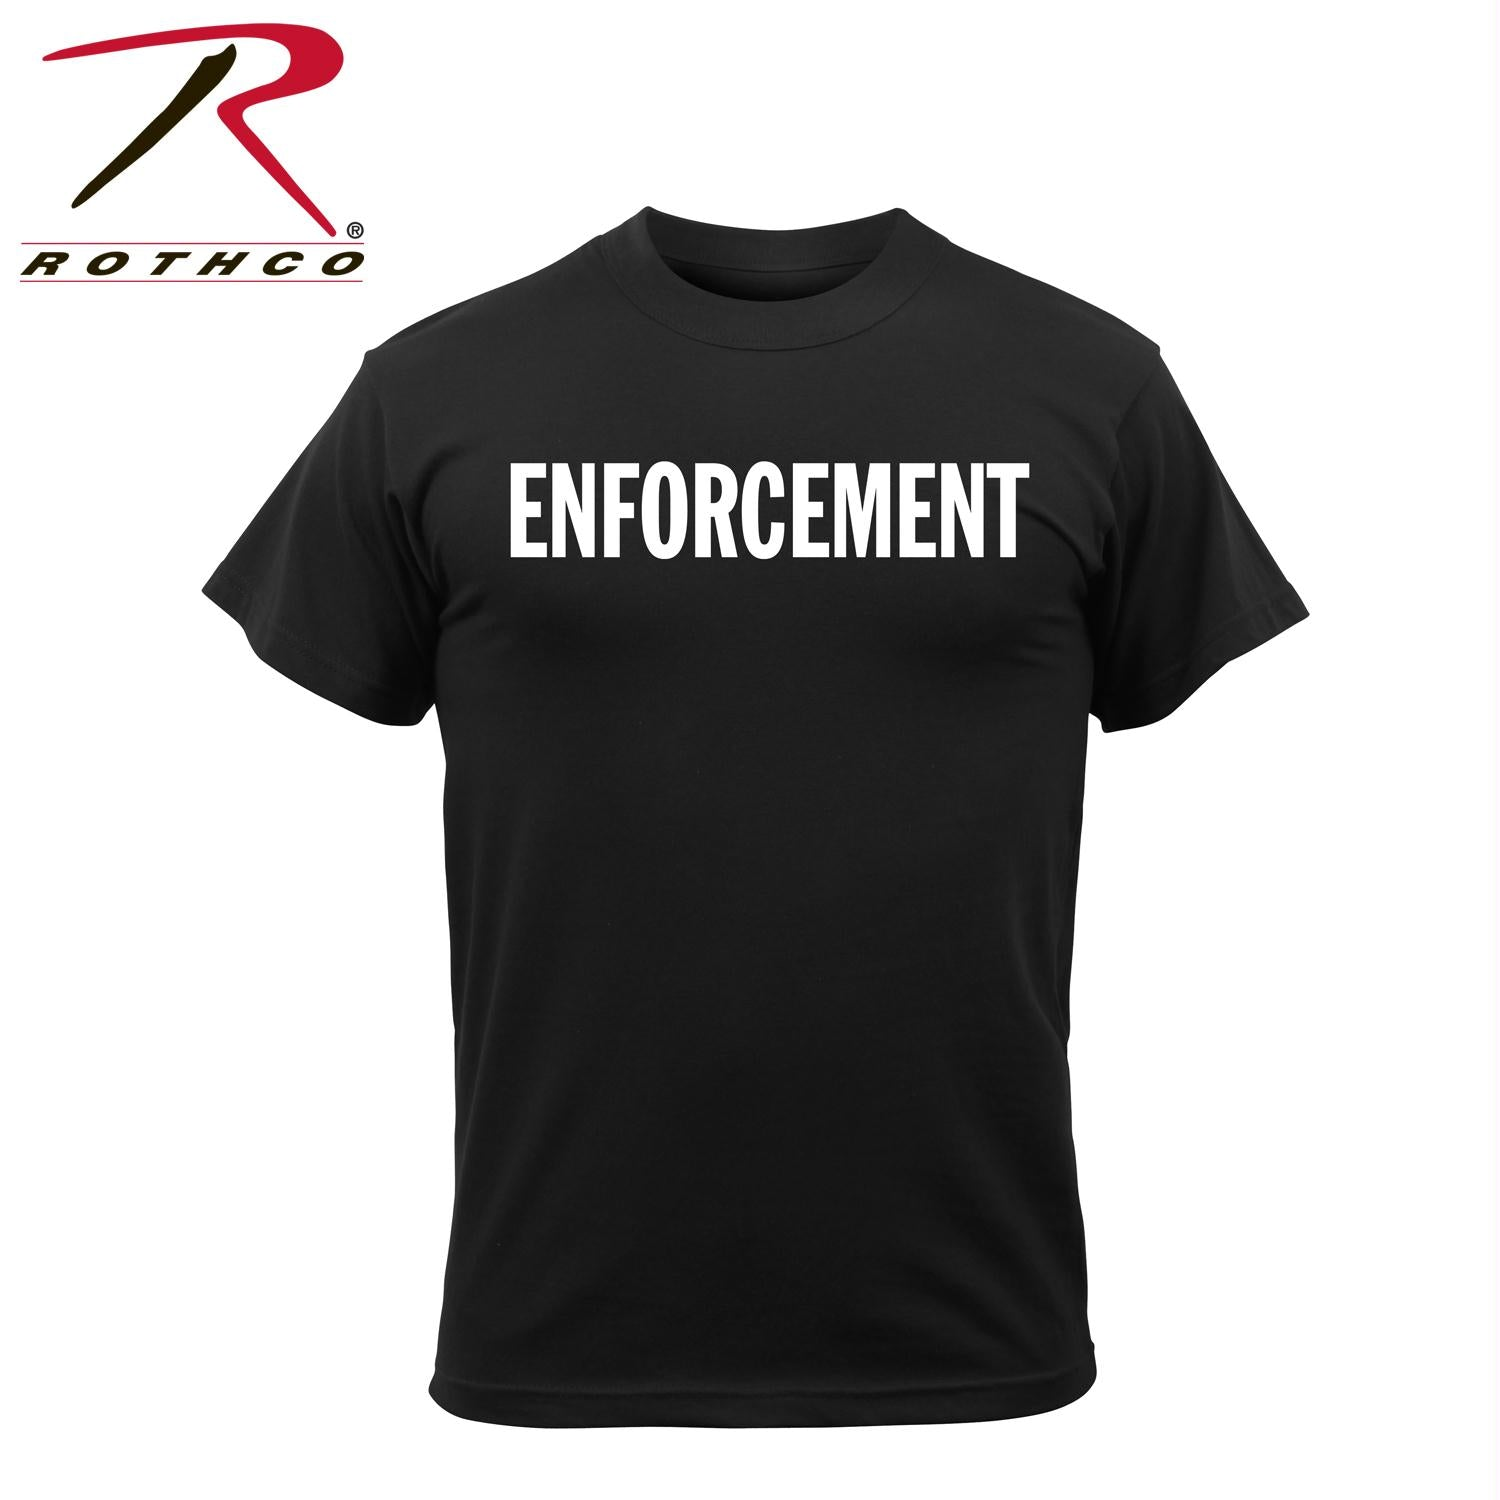 Rothco 2-Sided Enforcement T-Shirt - XL